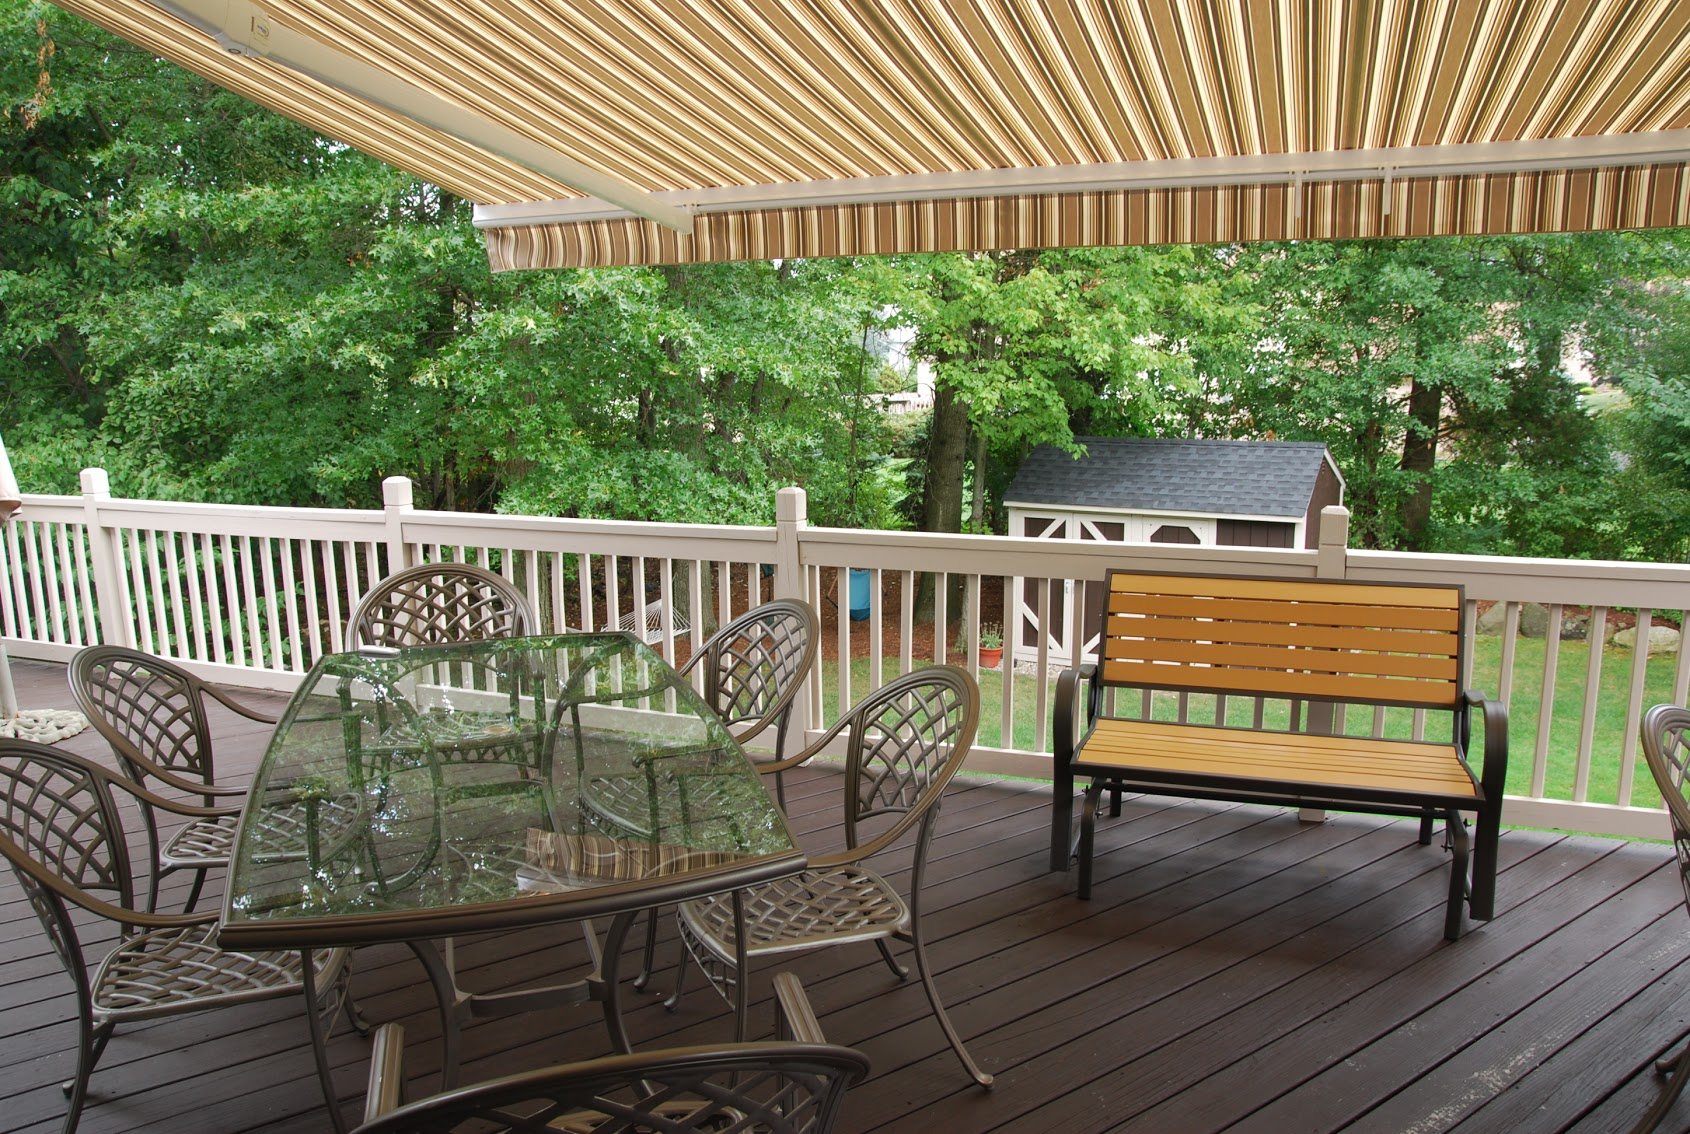 Eclipse Awning - Under View - by Breslow Home Design Center